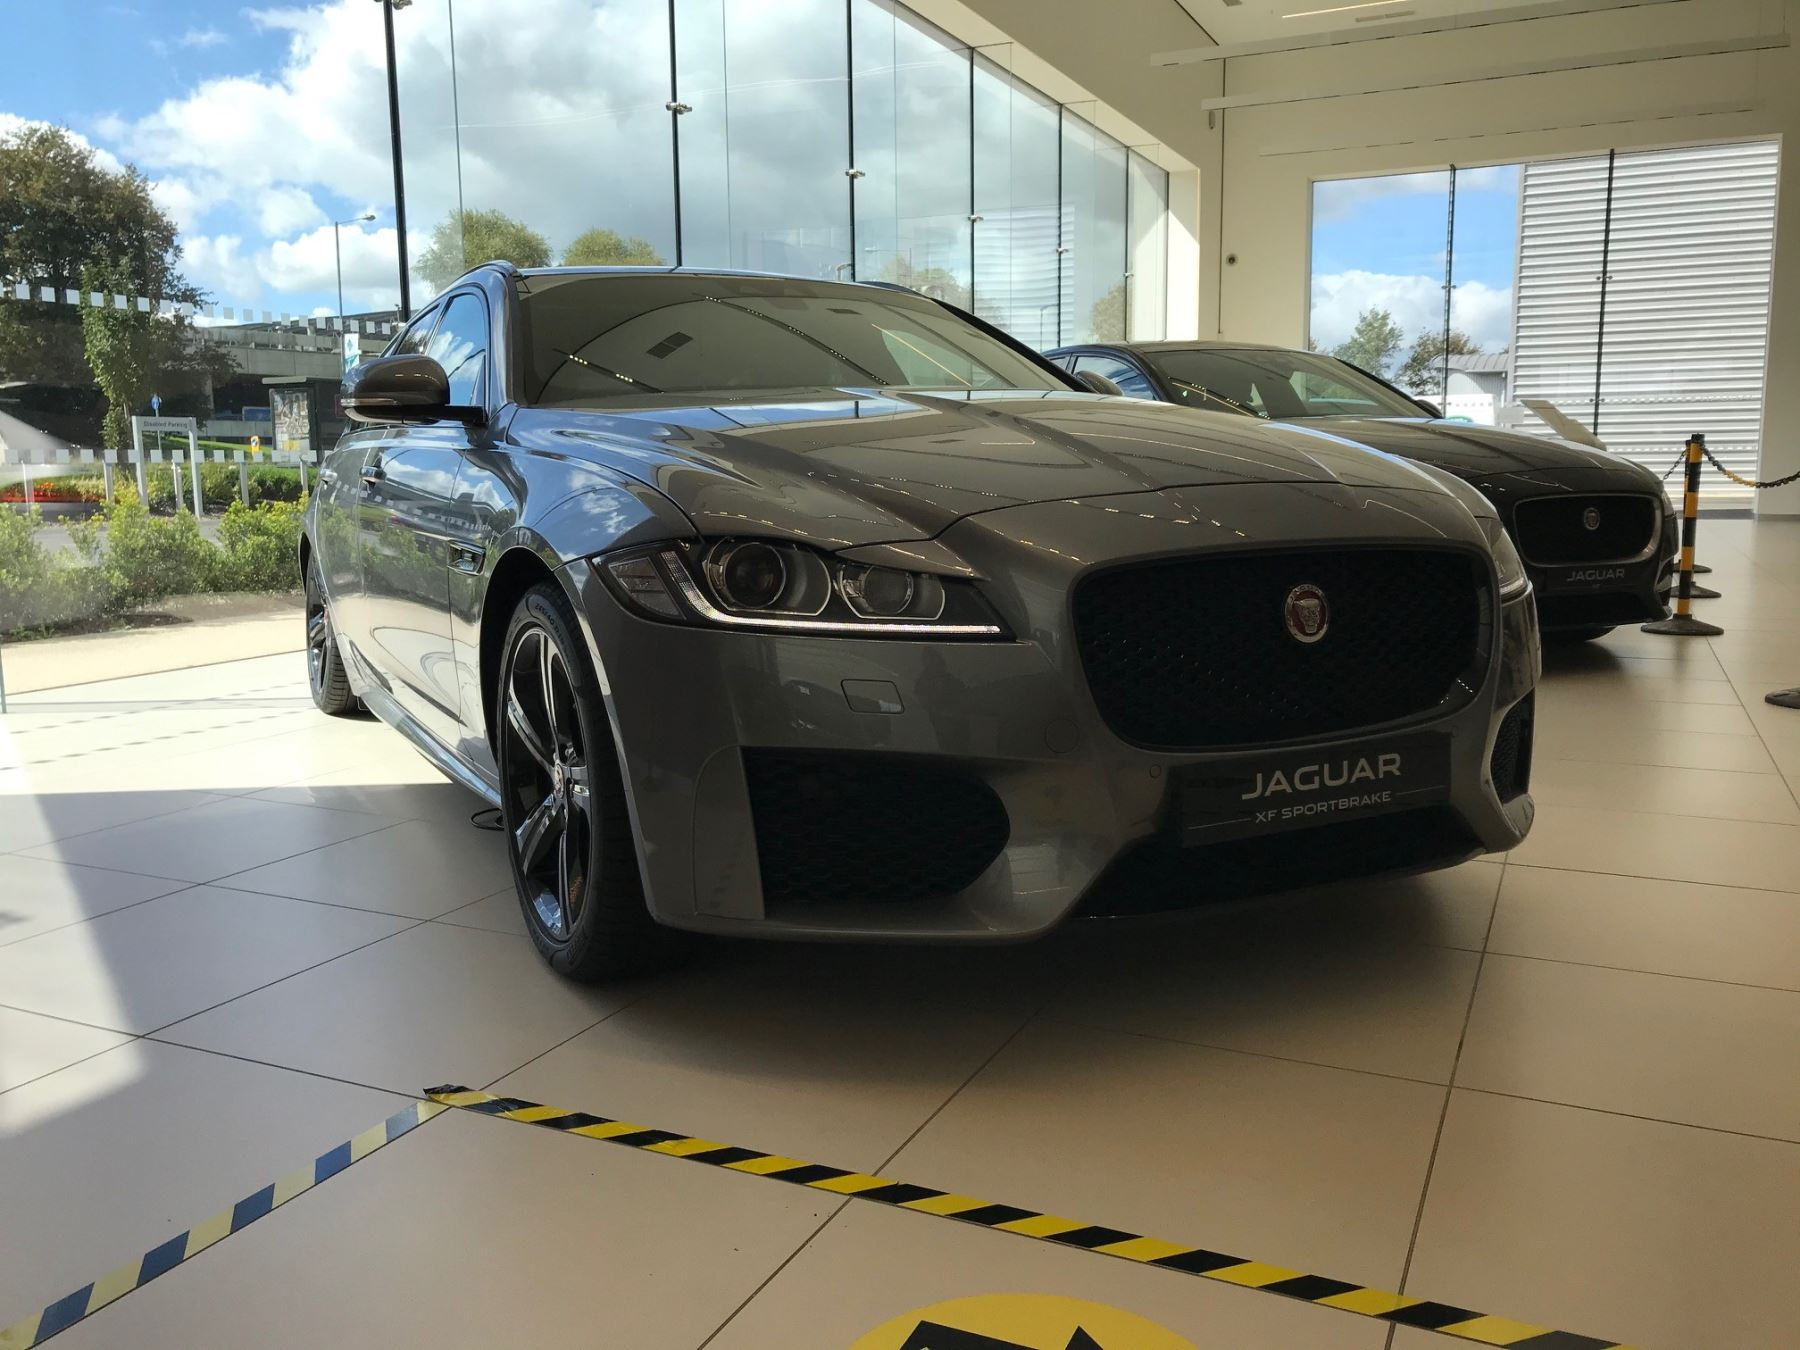 Jaguar XF SPORTBRAKE 2.0d [180] Chequered Flag AWD SPECIAL EDITIONS Diesel Automatic 5 door Estate